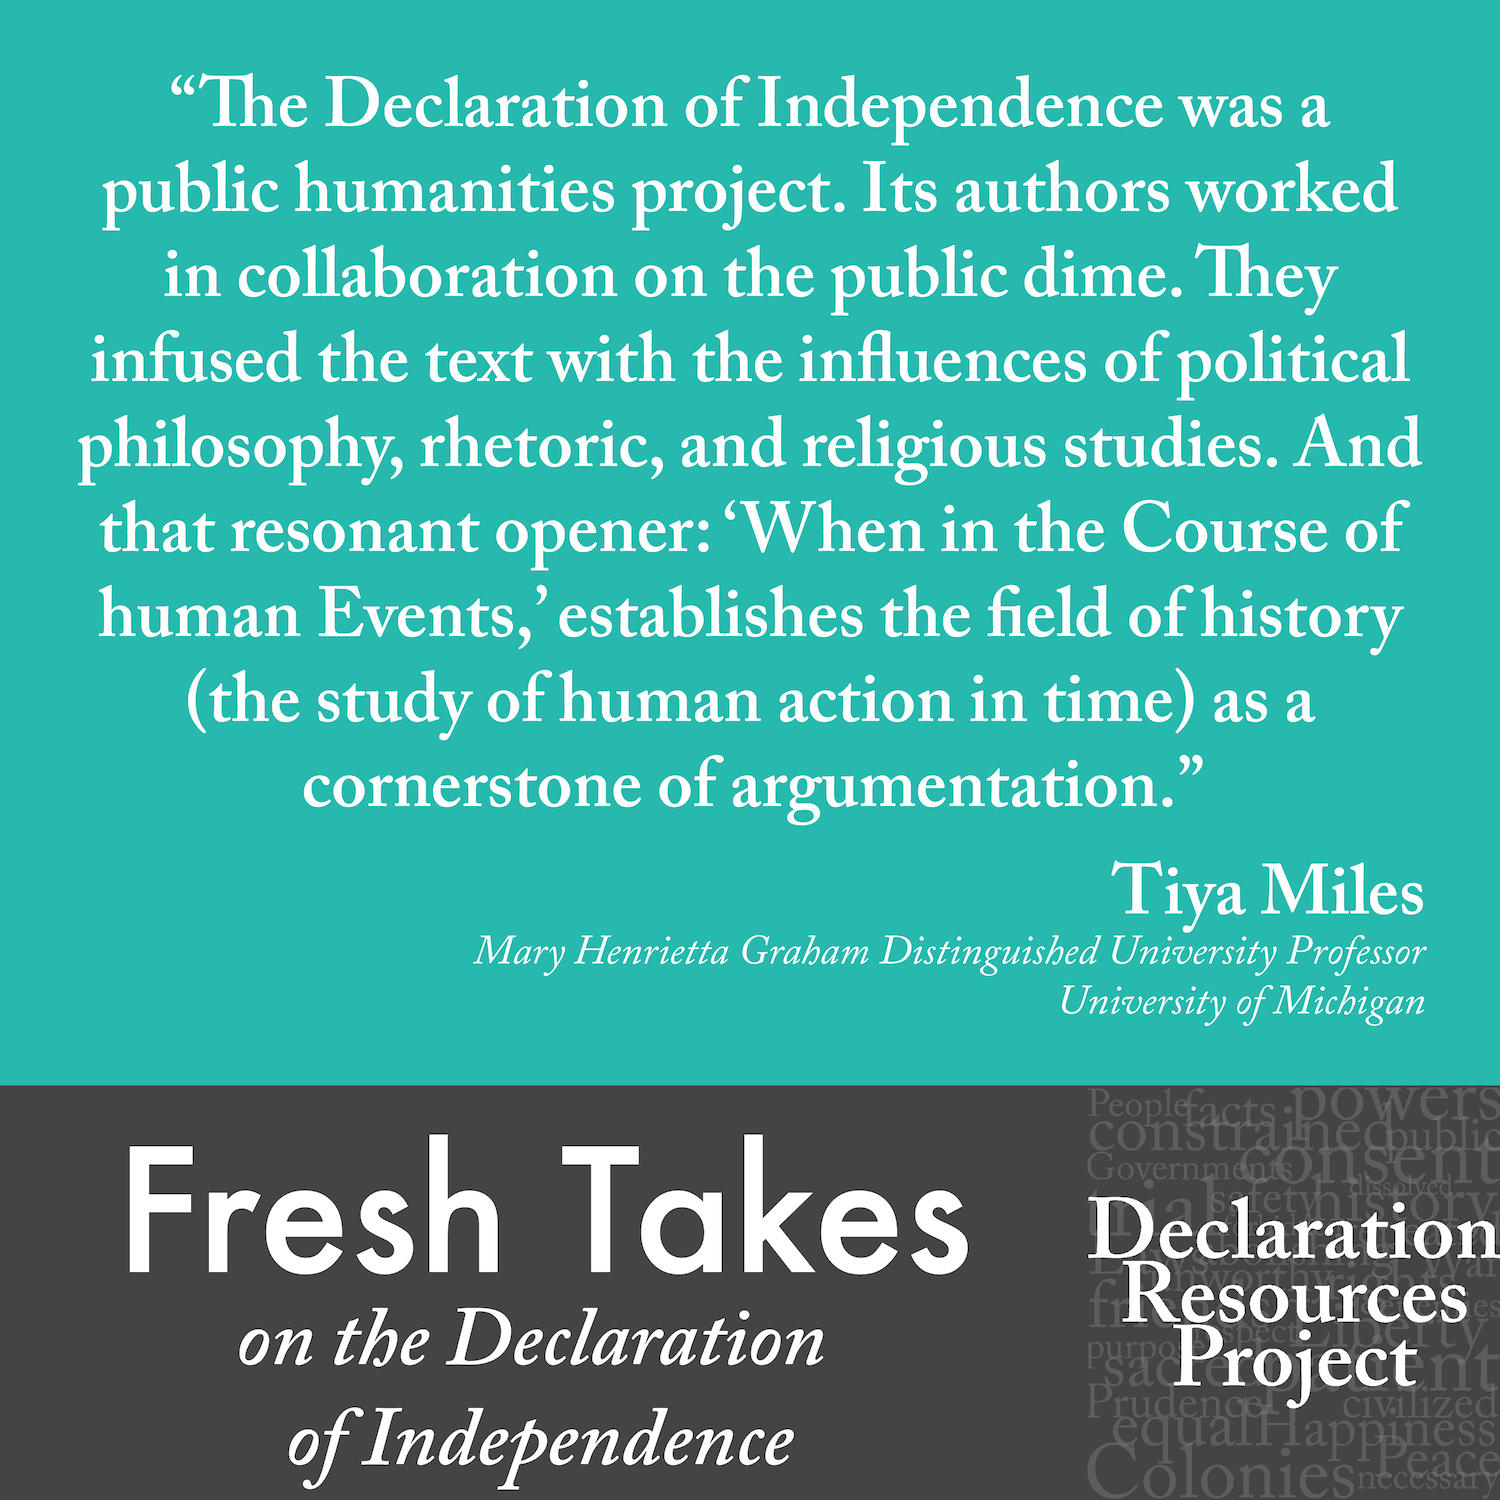 Tiya Miles' Fresh Take